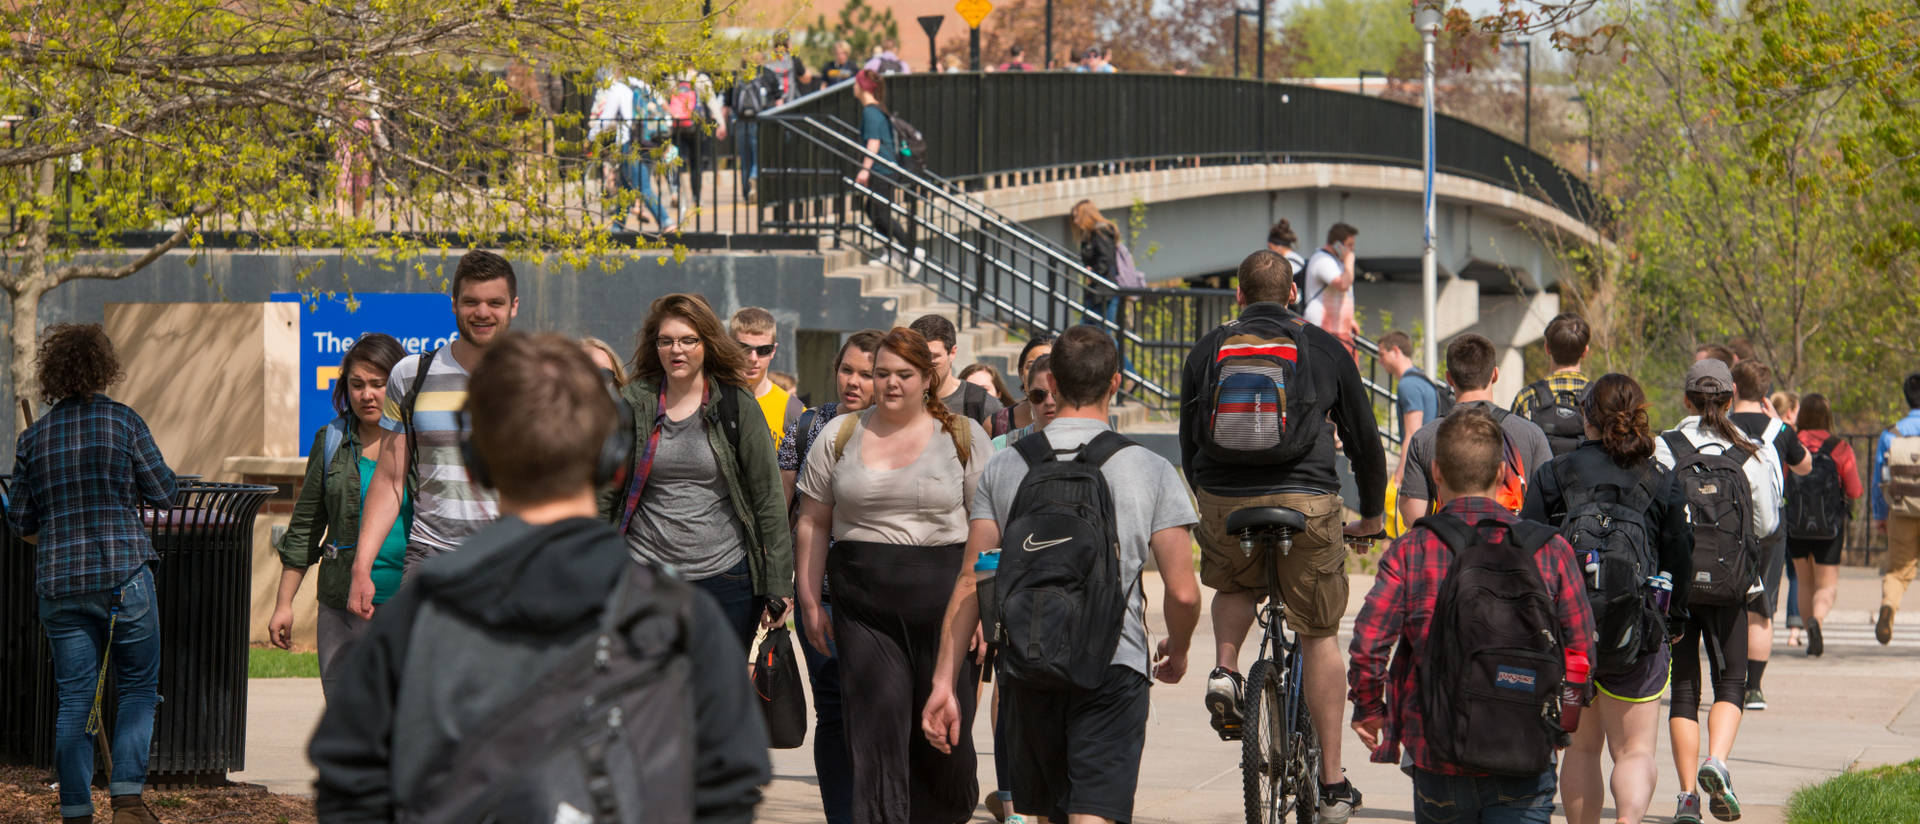 Students walking on campus sidewalks and the campus footbridge